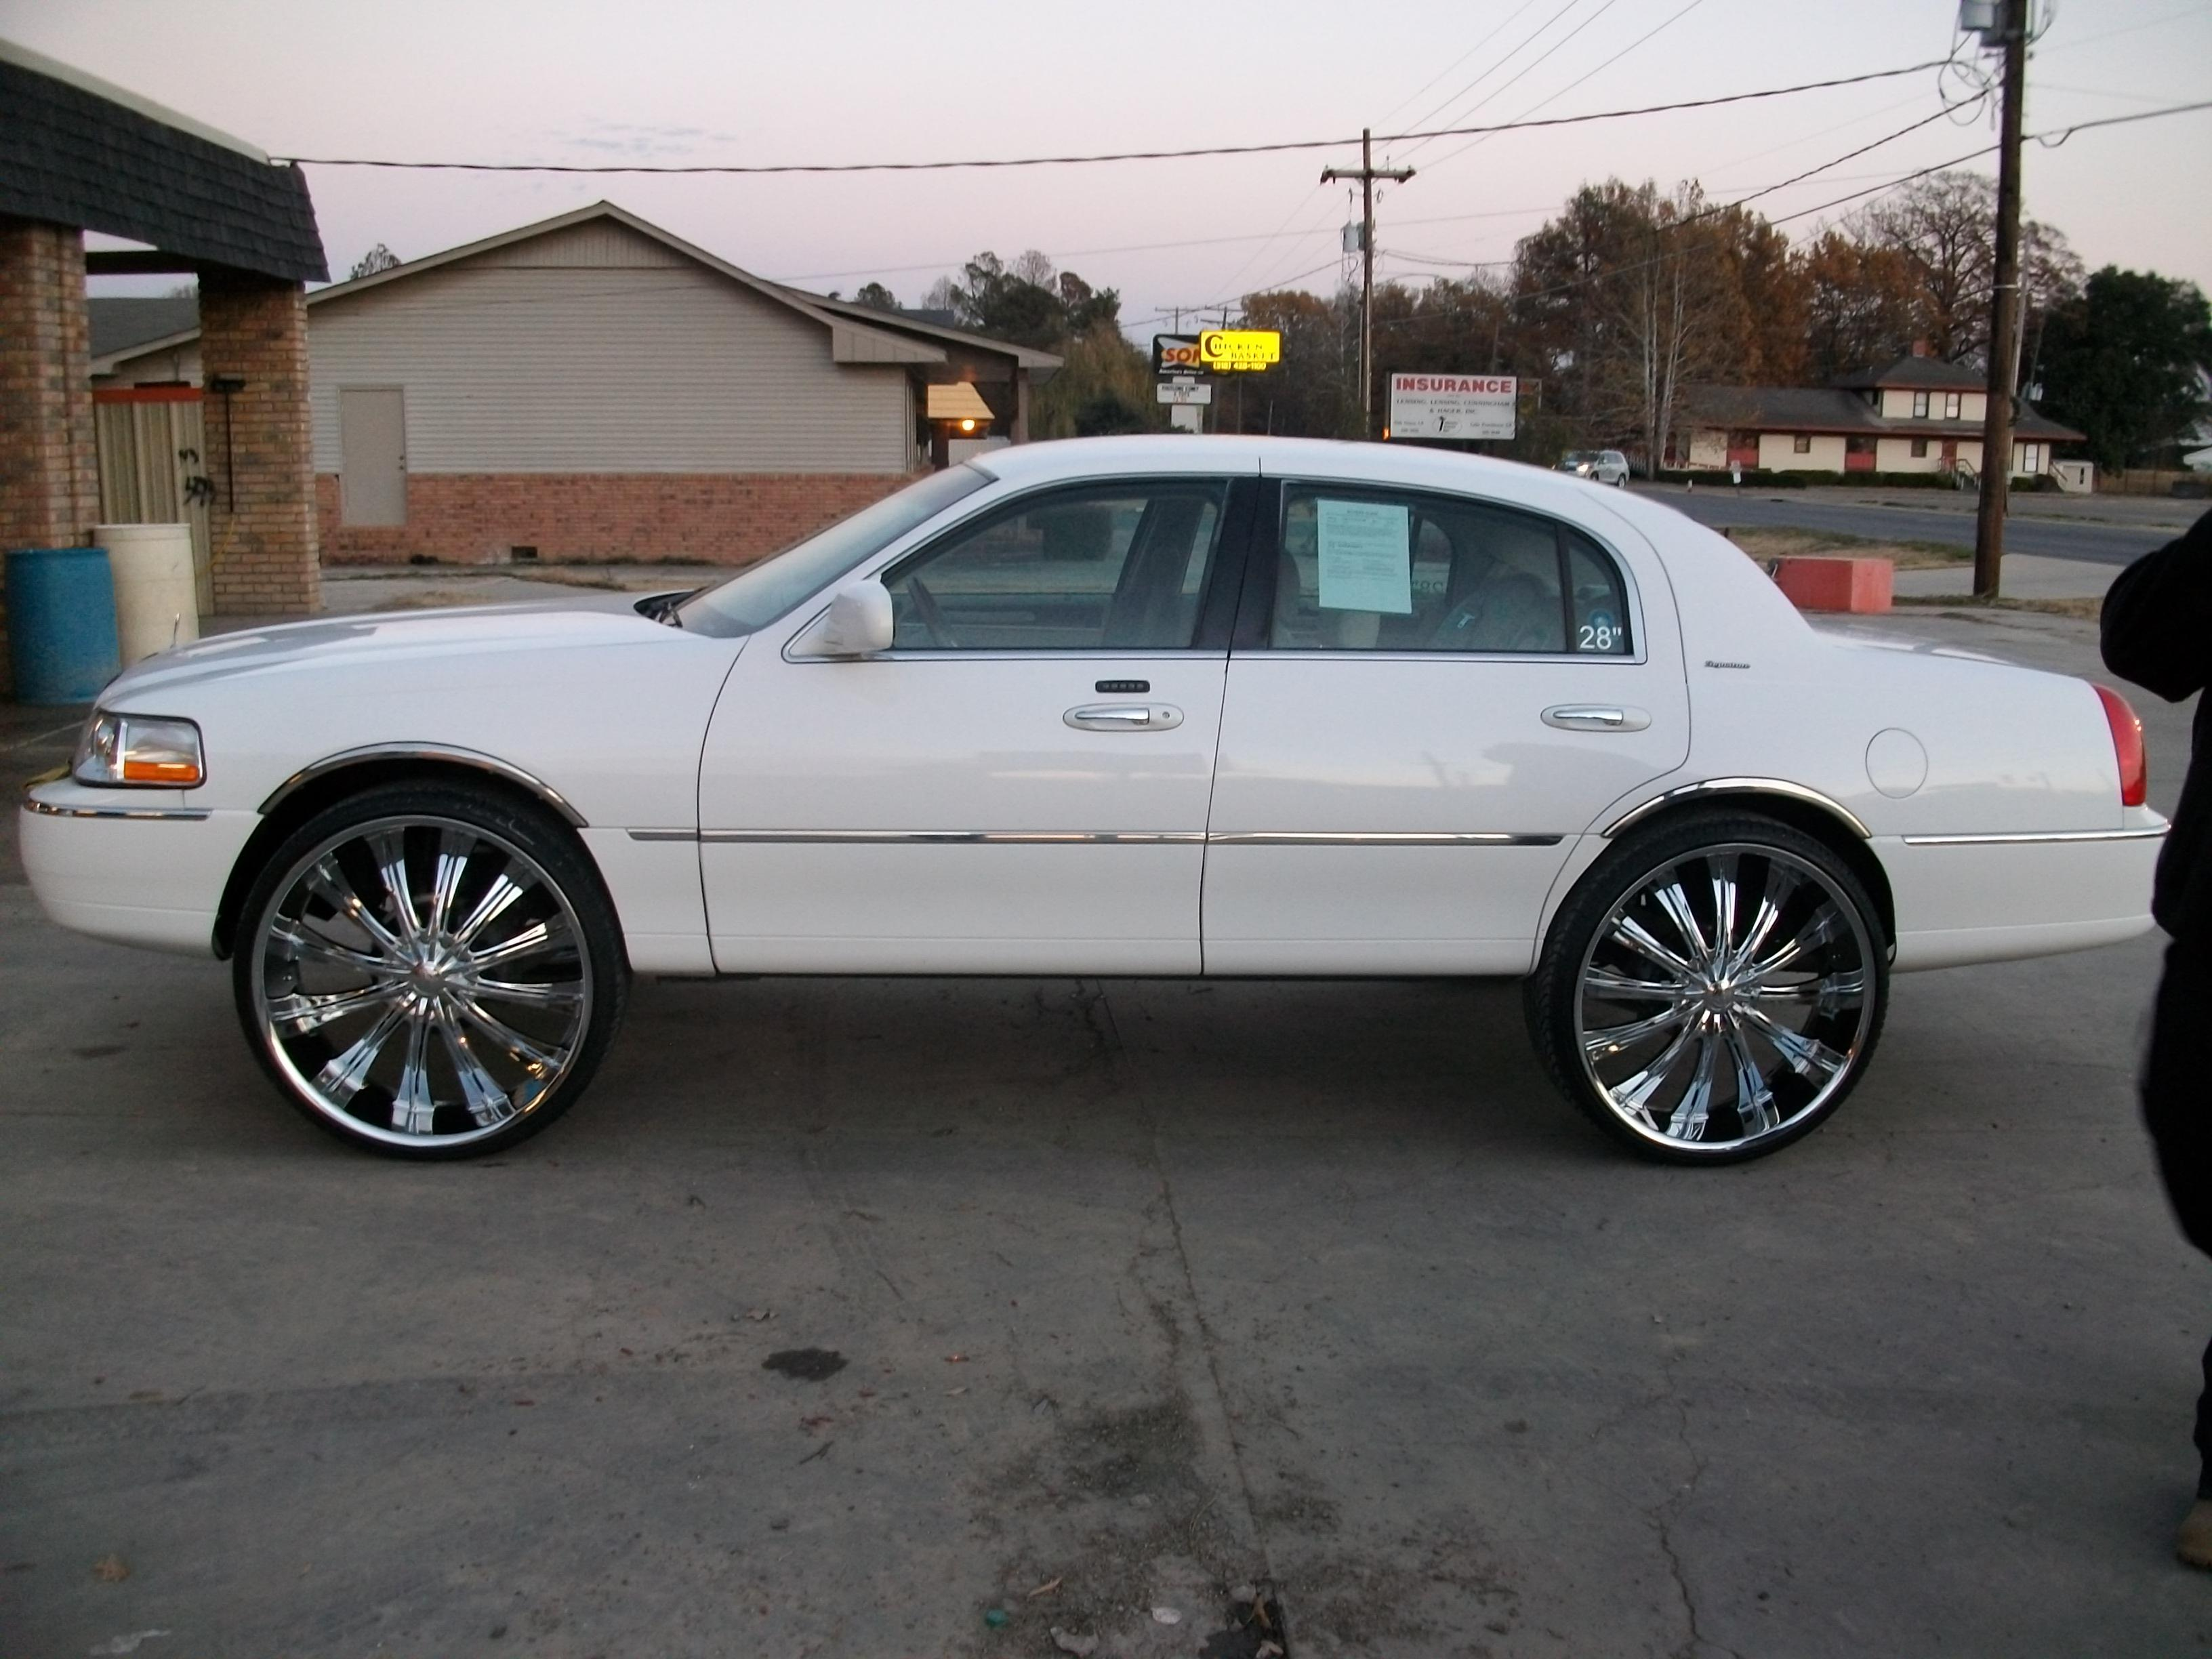 jdwhiite 2003 Lincoln Town Car